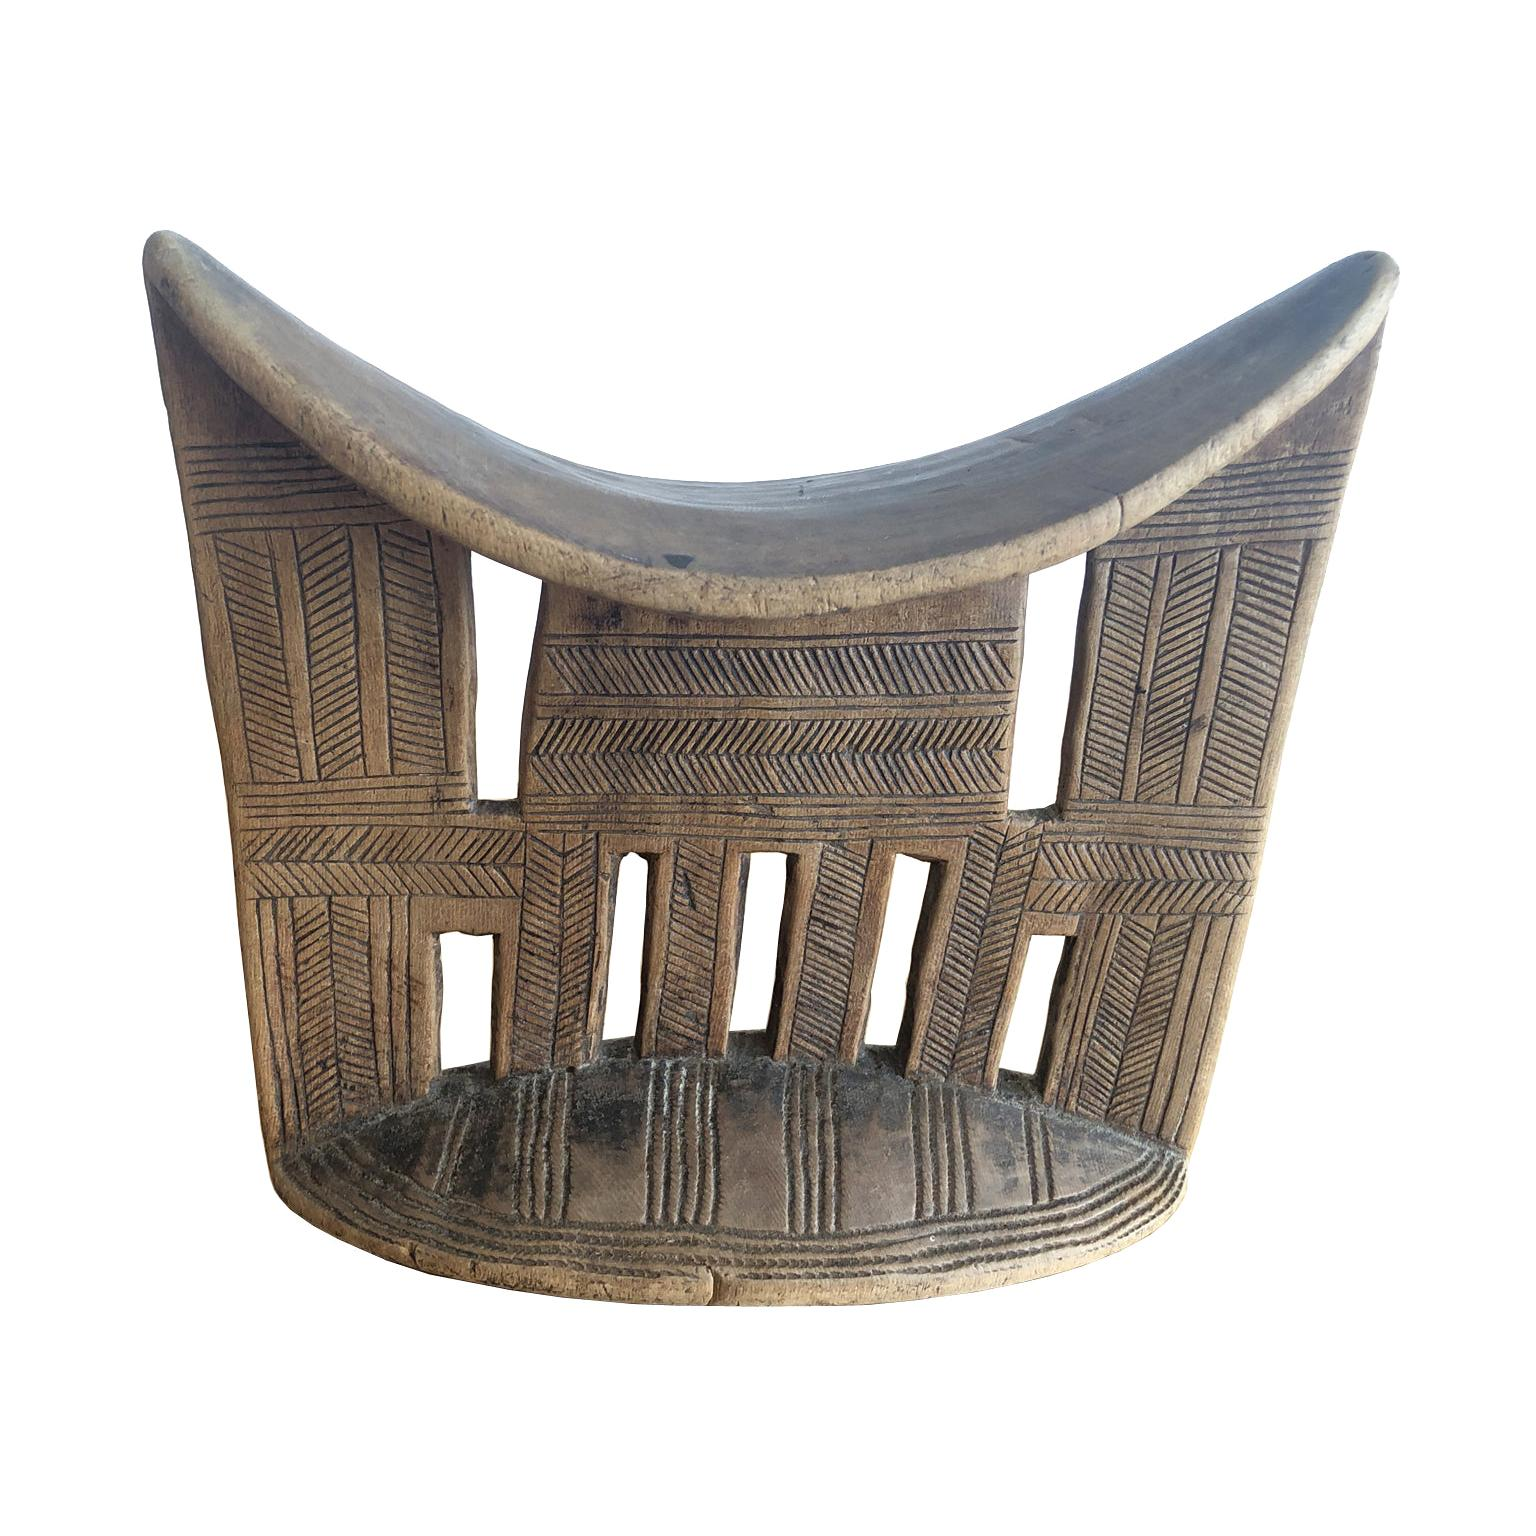 African Tribal Headrest in Carved Wood from the Sidama People of Ethiopia